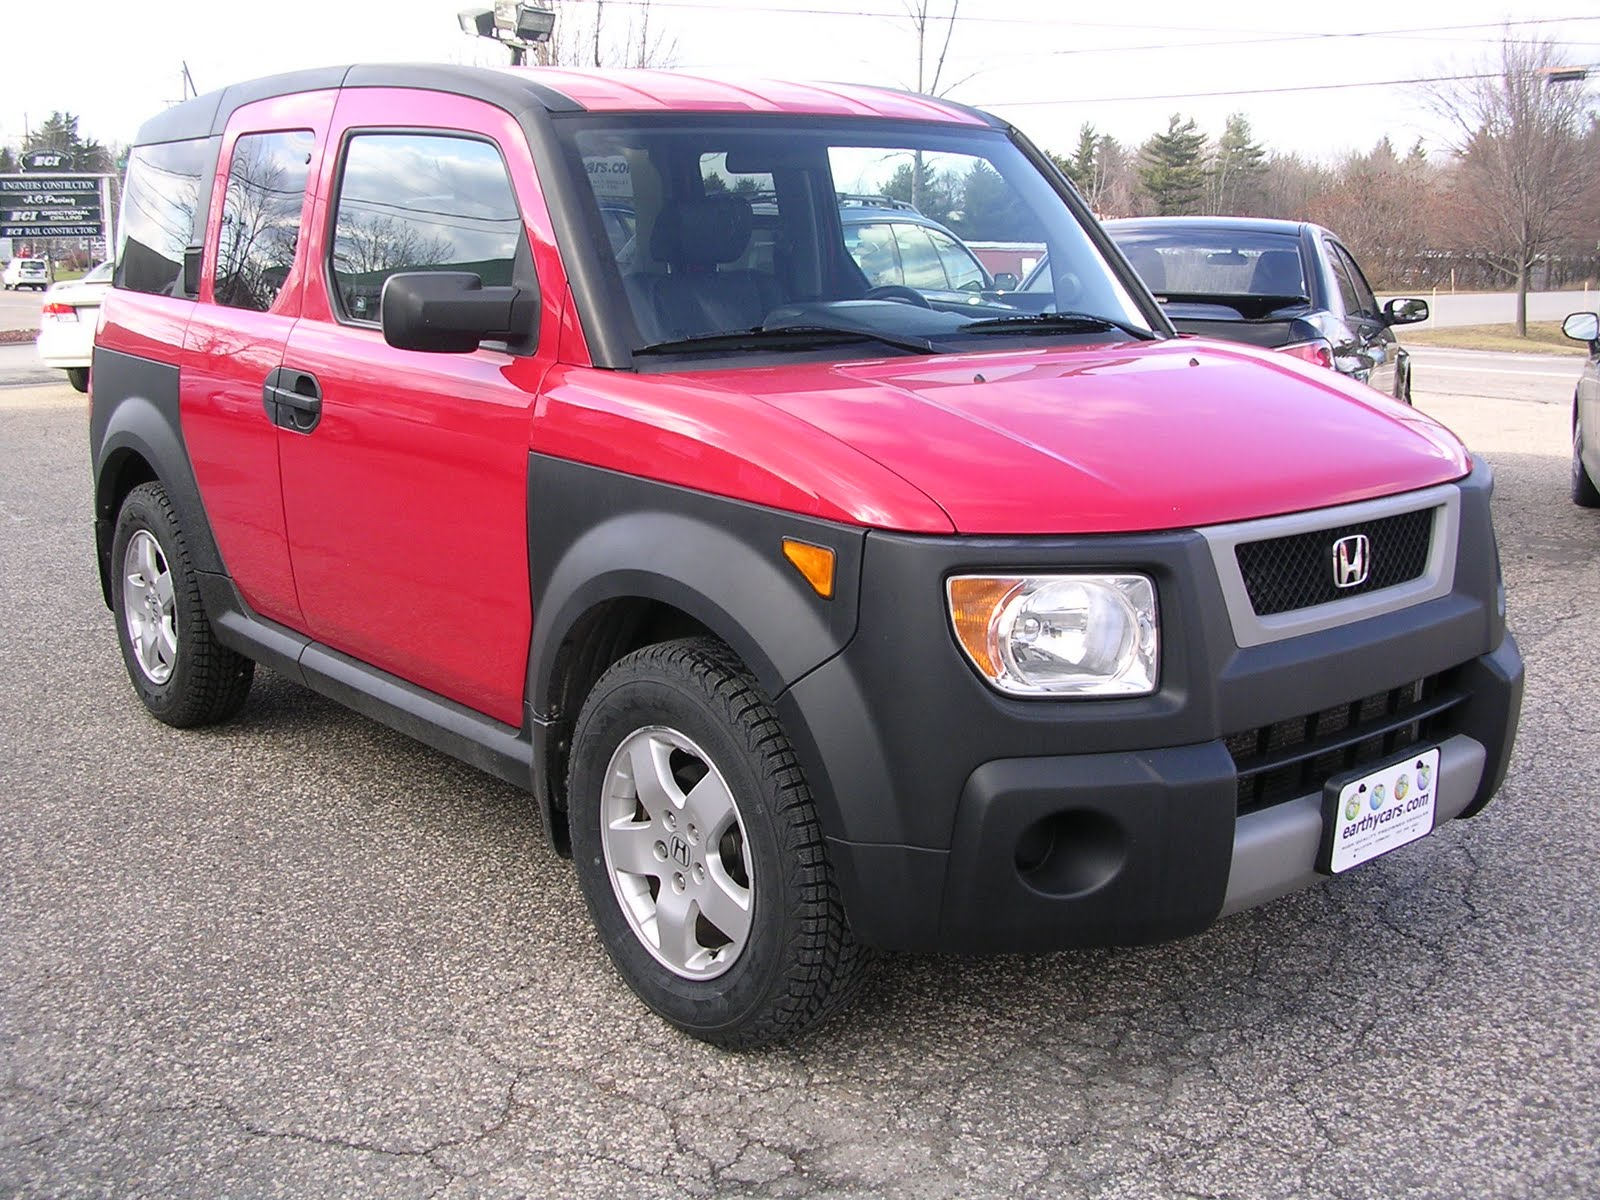 earthy cars blog 2005 honda element ex w side airbags 4wd red. Black Bedroom Furniture Sets. Home Design Ideas